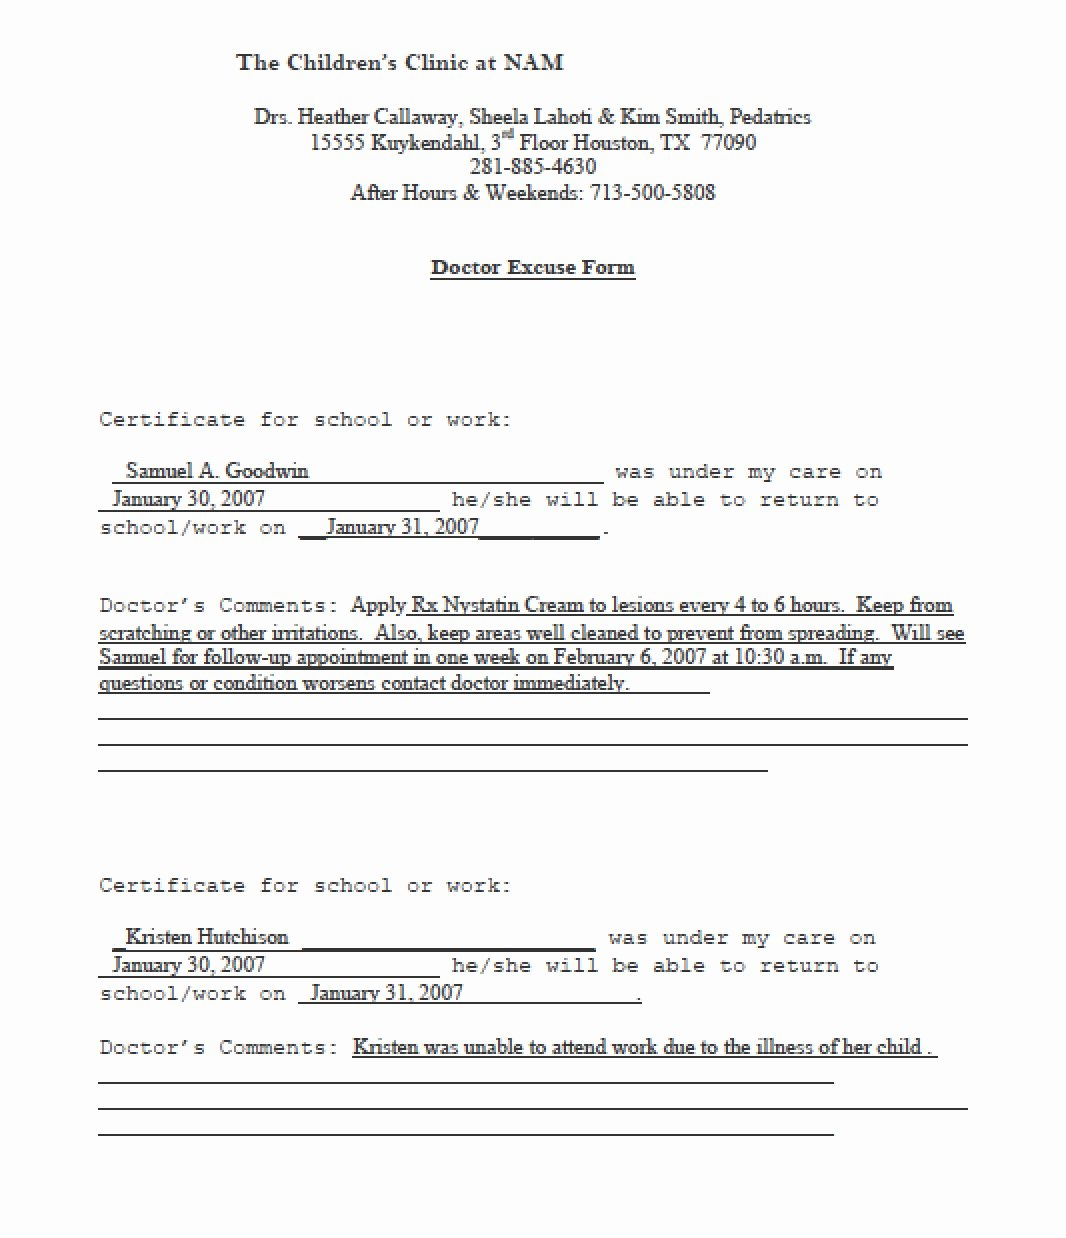 Kaiser Permanente Doctors Note Template Awesome 13 Doctors Note Templates Fake & Excuse Samples